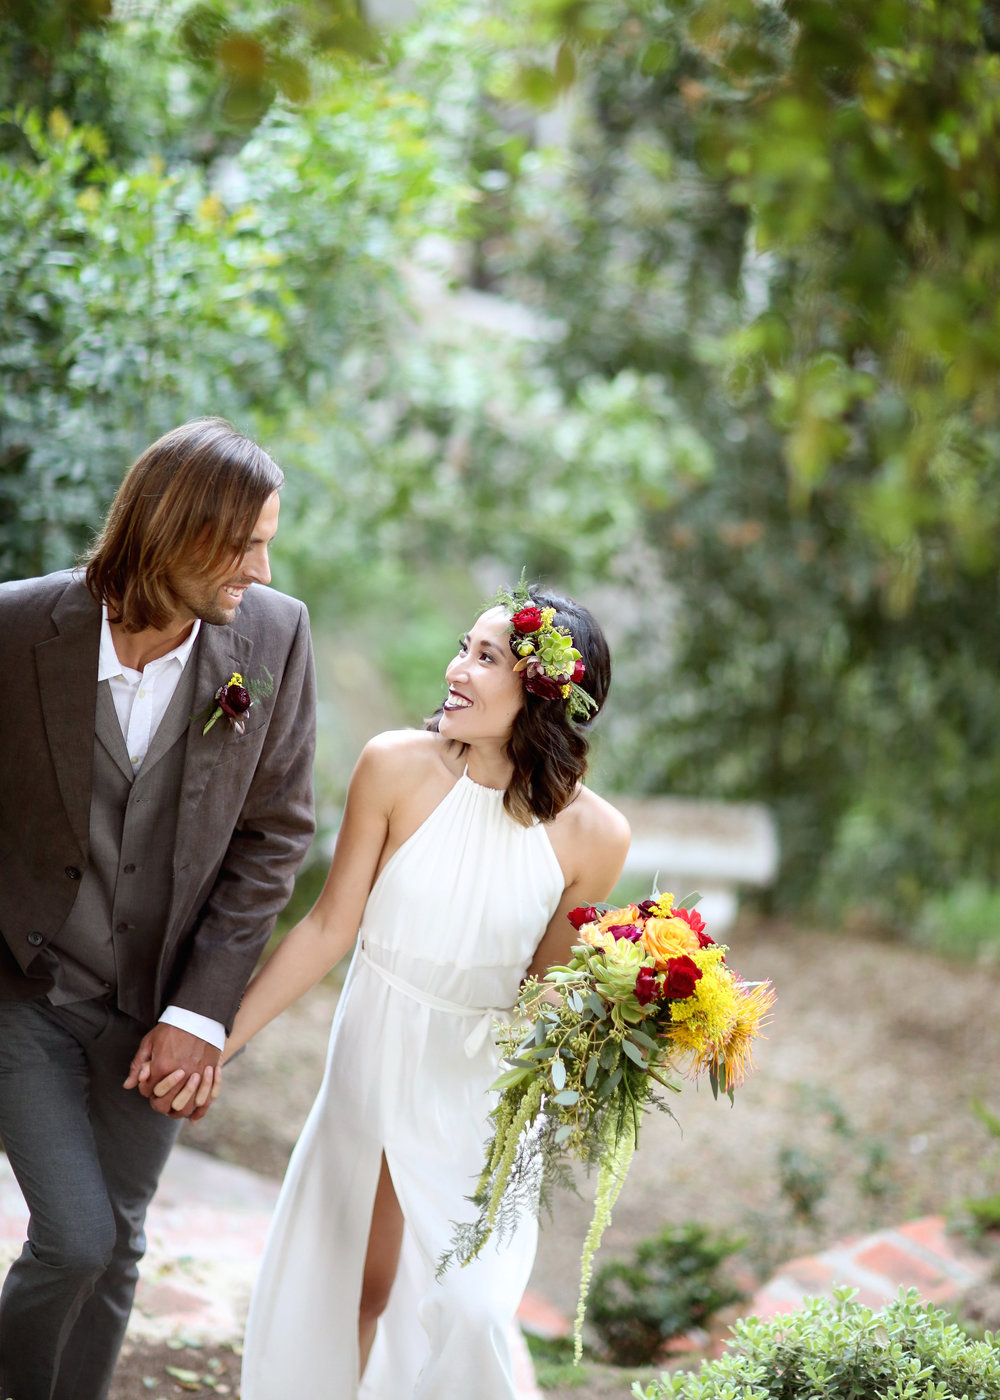 Boho Bride - A Modern Bohemian Outdoor Wedding Shoot - Bleudog Fotography